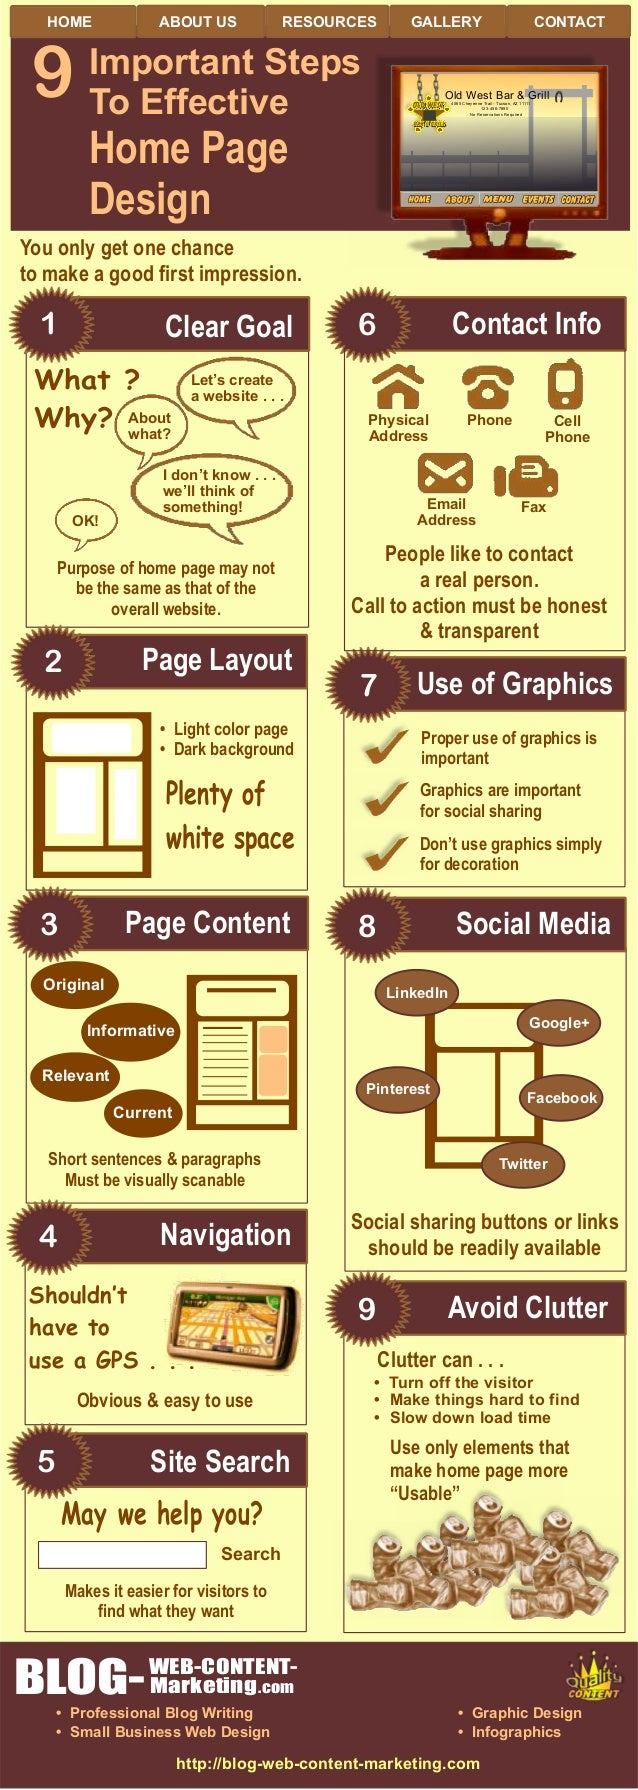 9 Important Steps To Effective Home Page Design